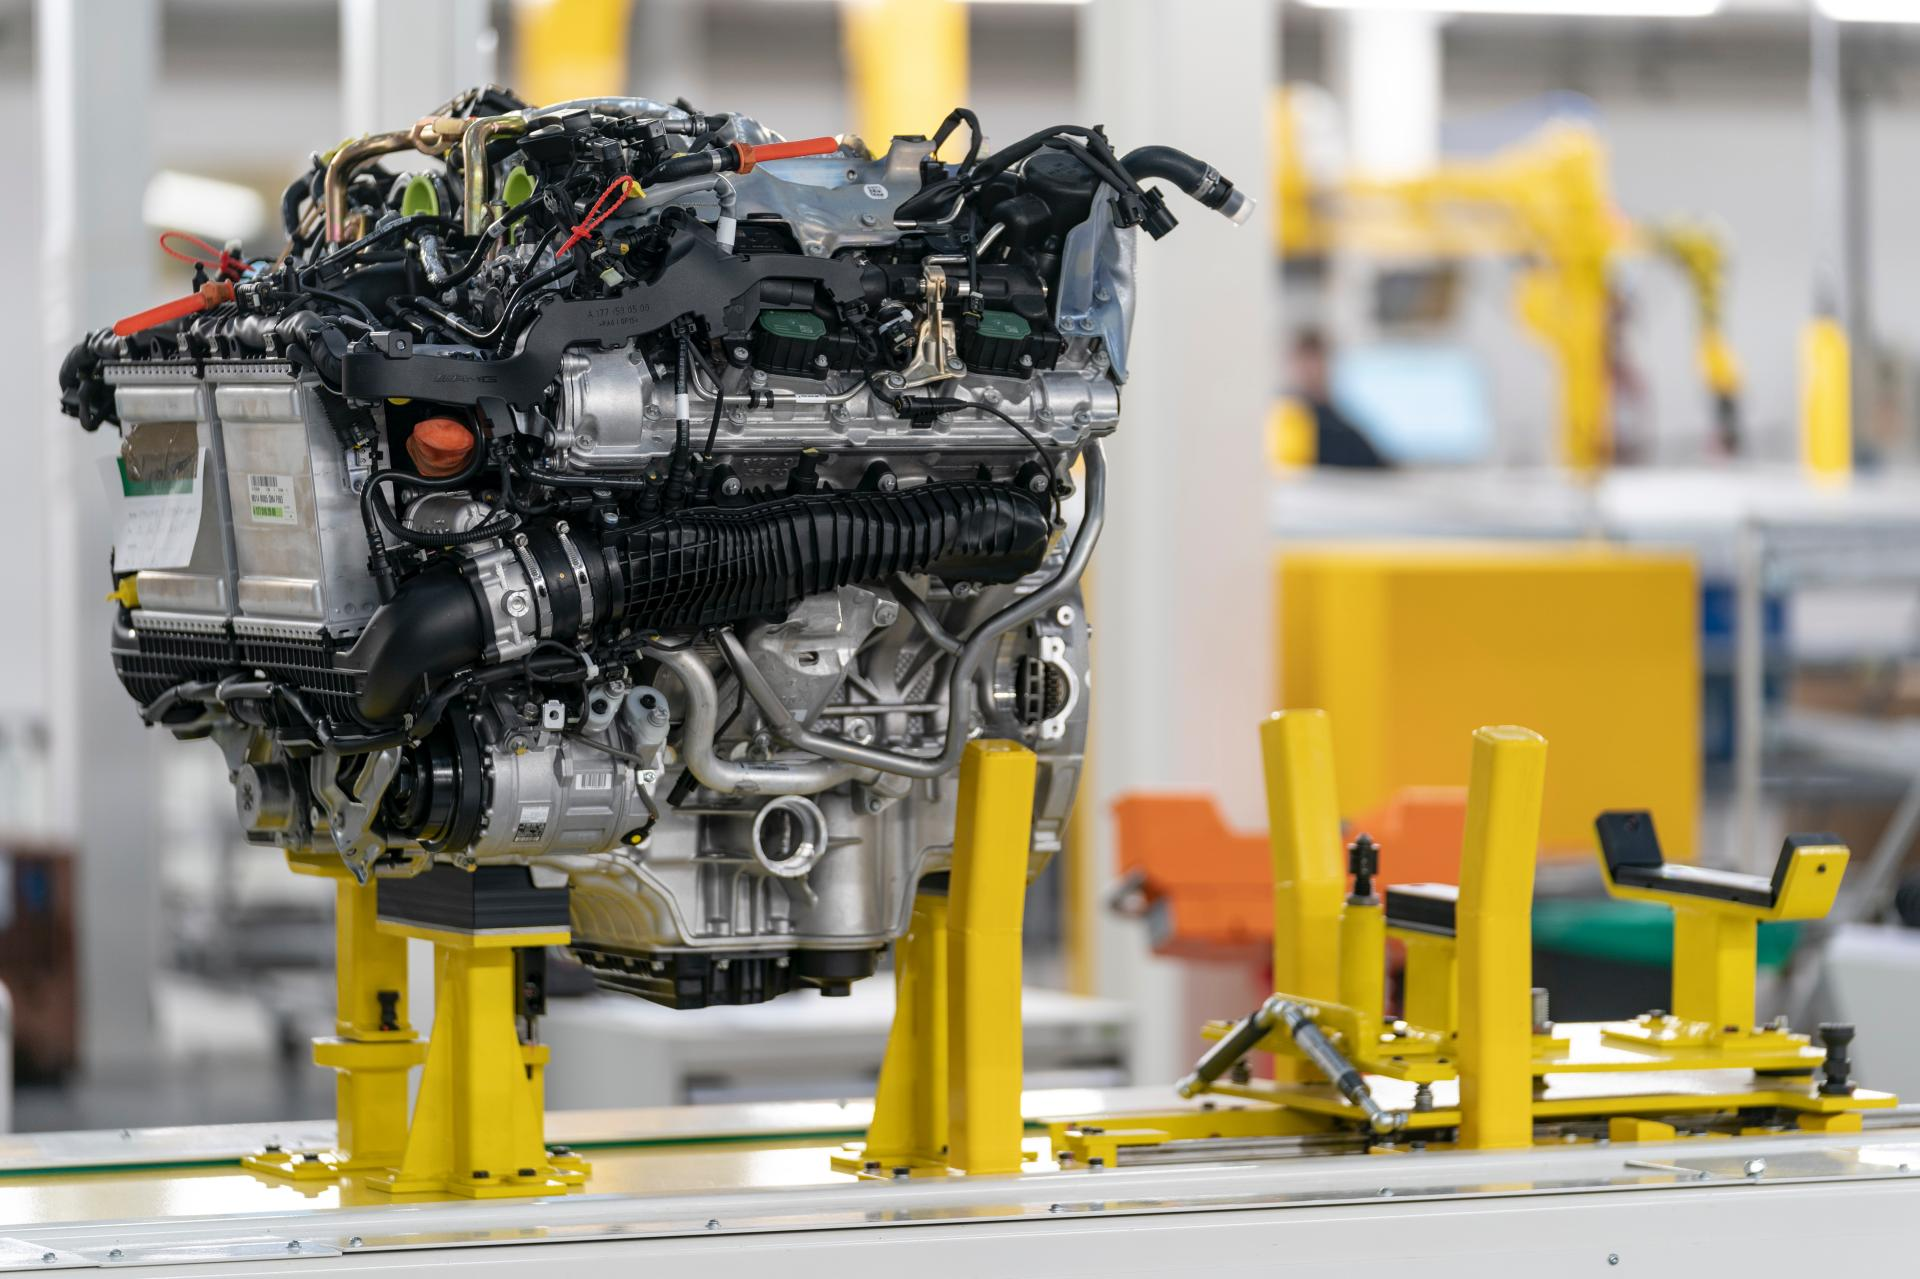 2020 Aston Martin Dbx Rolls Off Assembly Line At New St Athan Plant 5